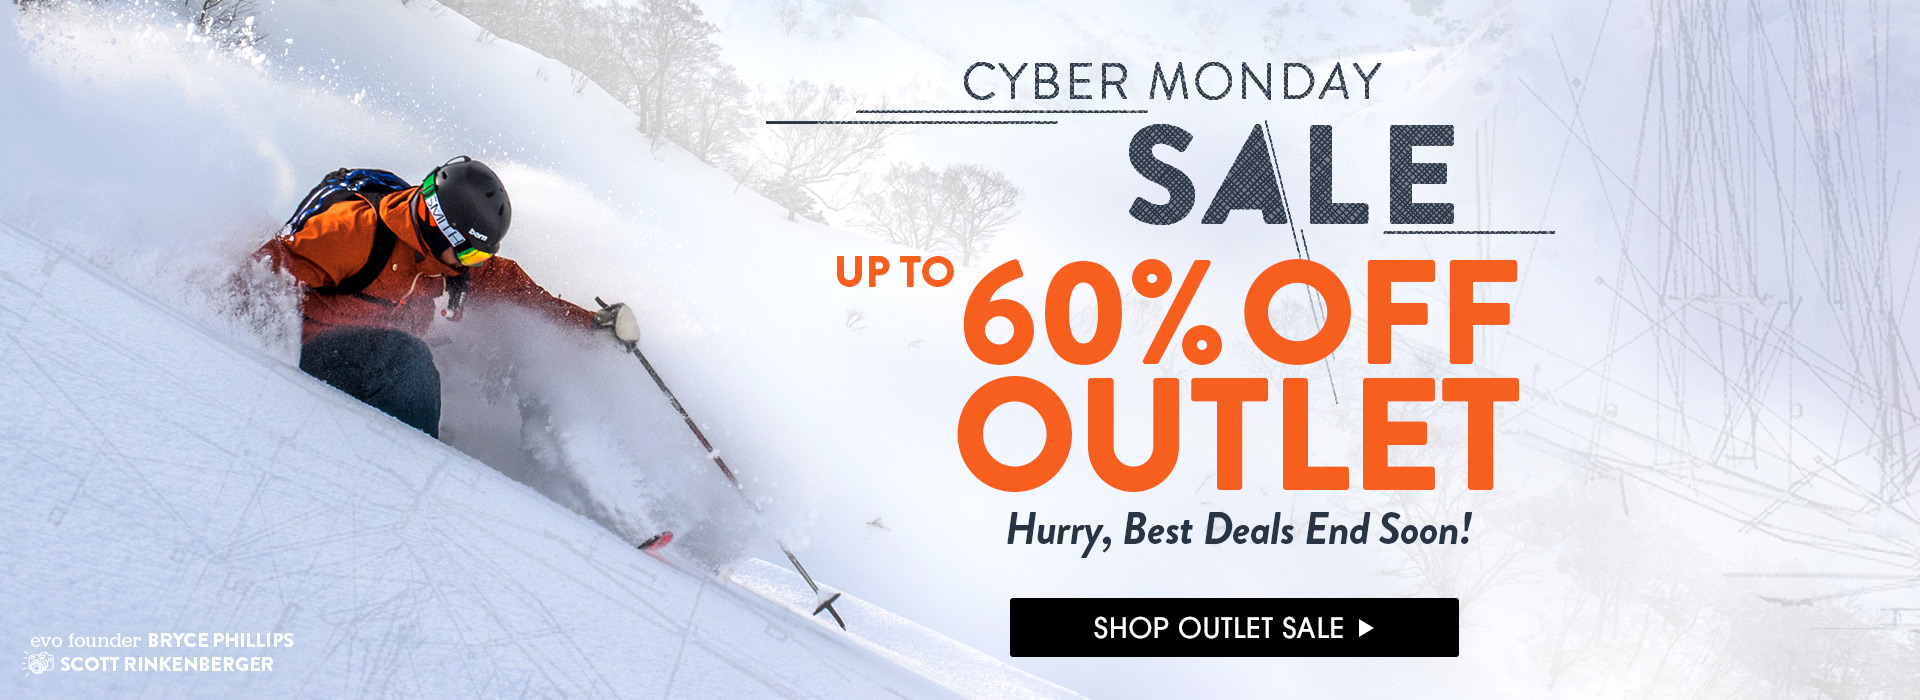 Cyber Monday. Up to 60% Off. Shop Now!